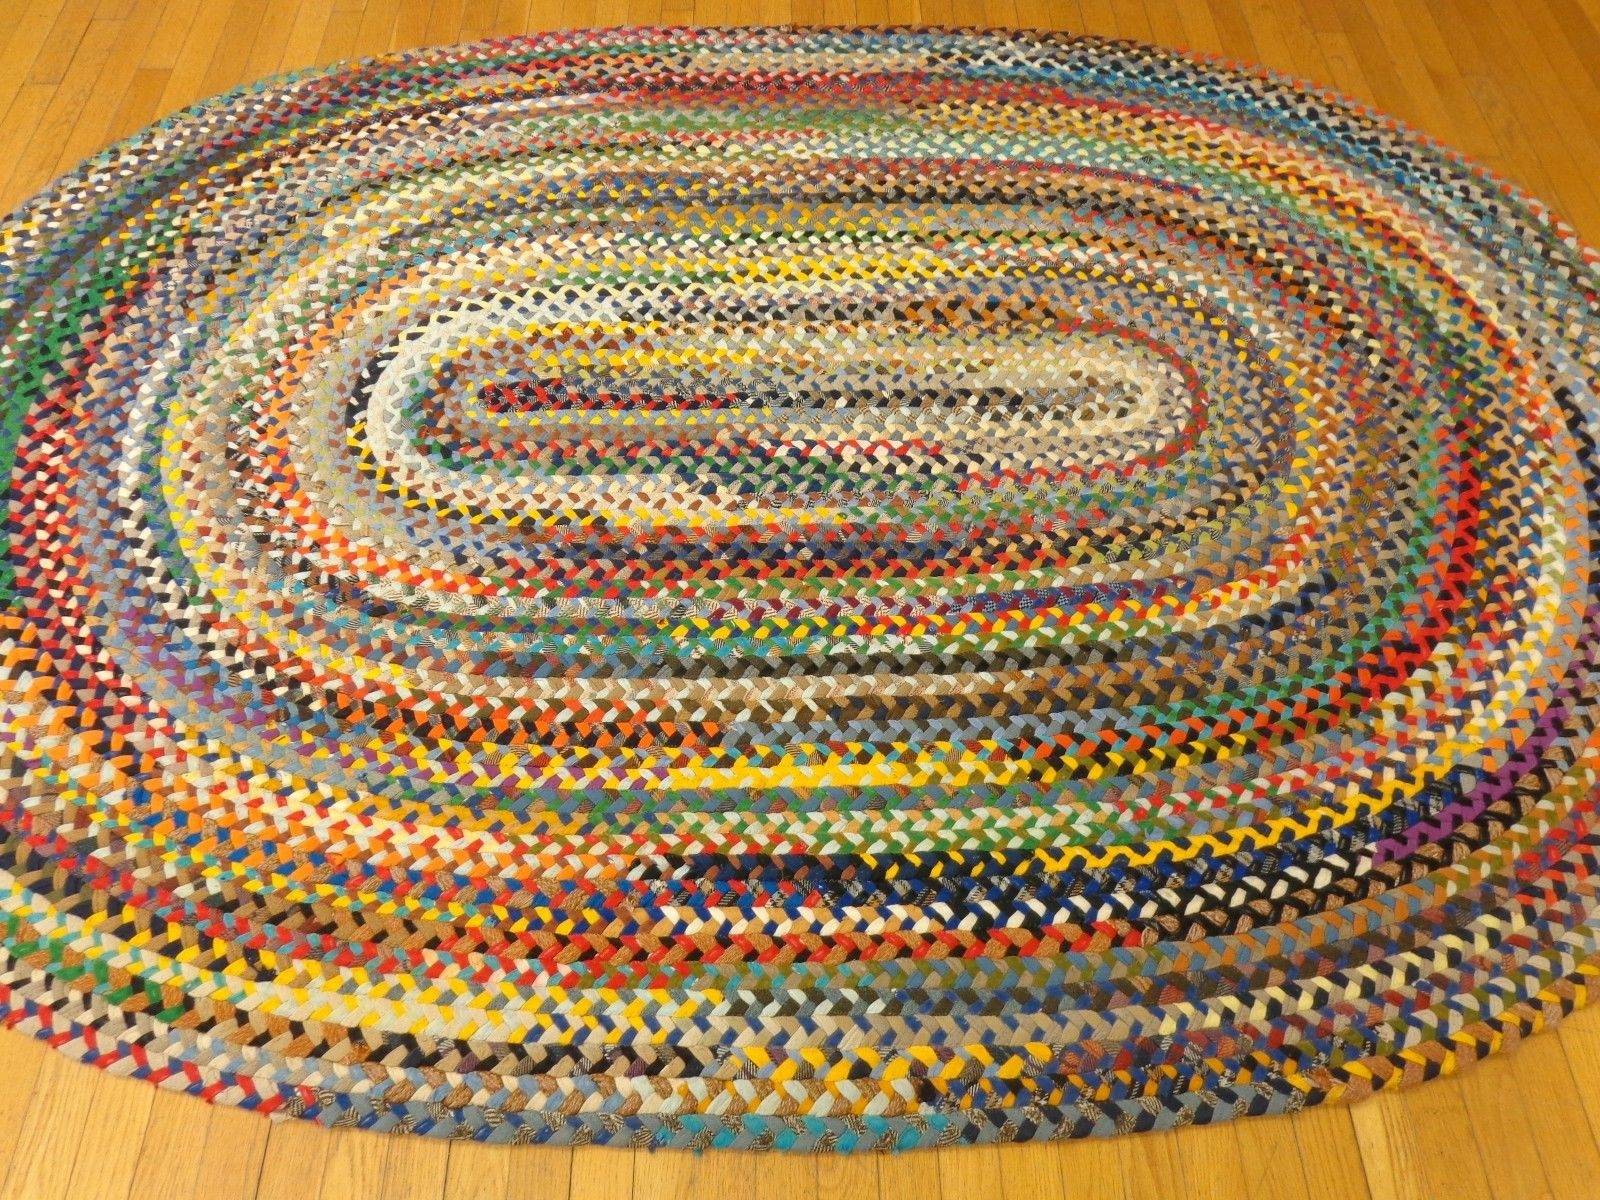 Braided Wool Area Rug Droughtrelief Org